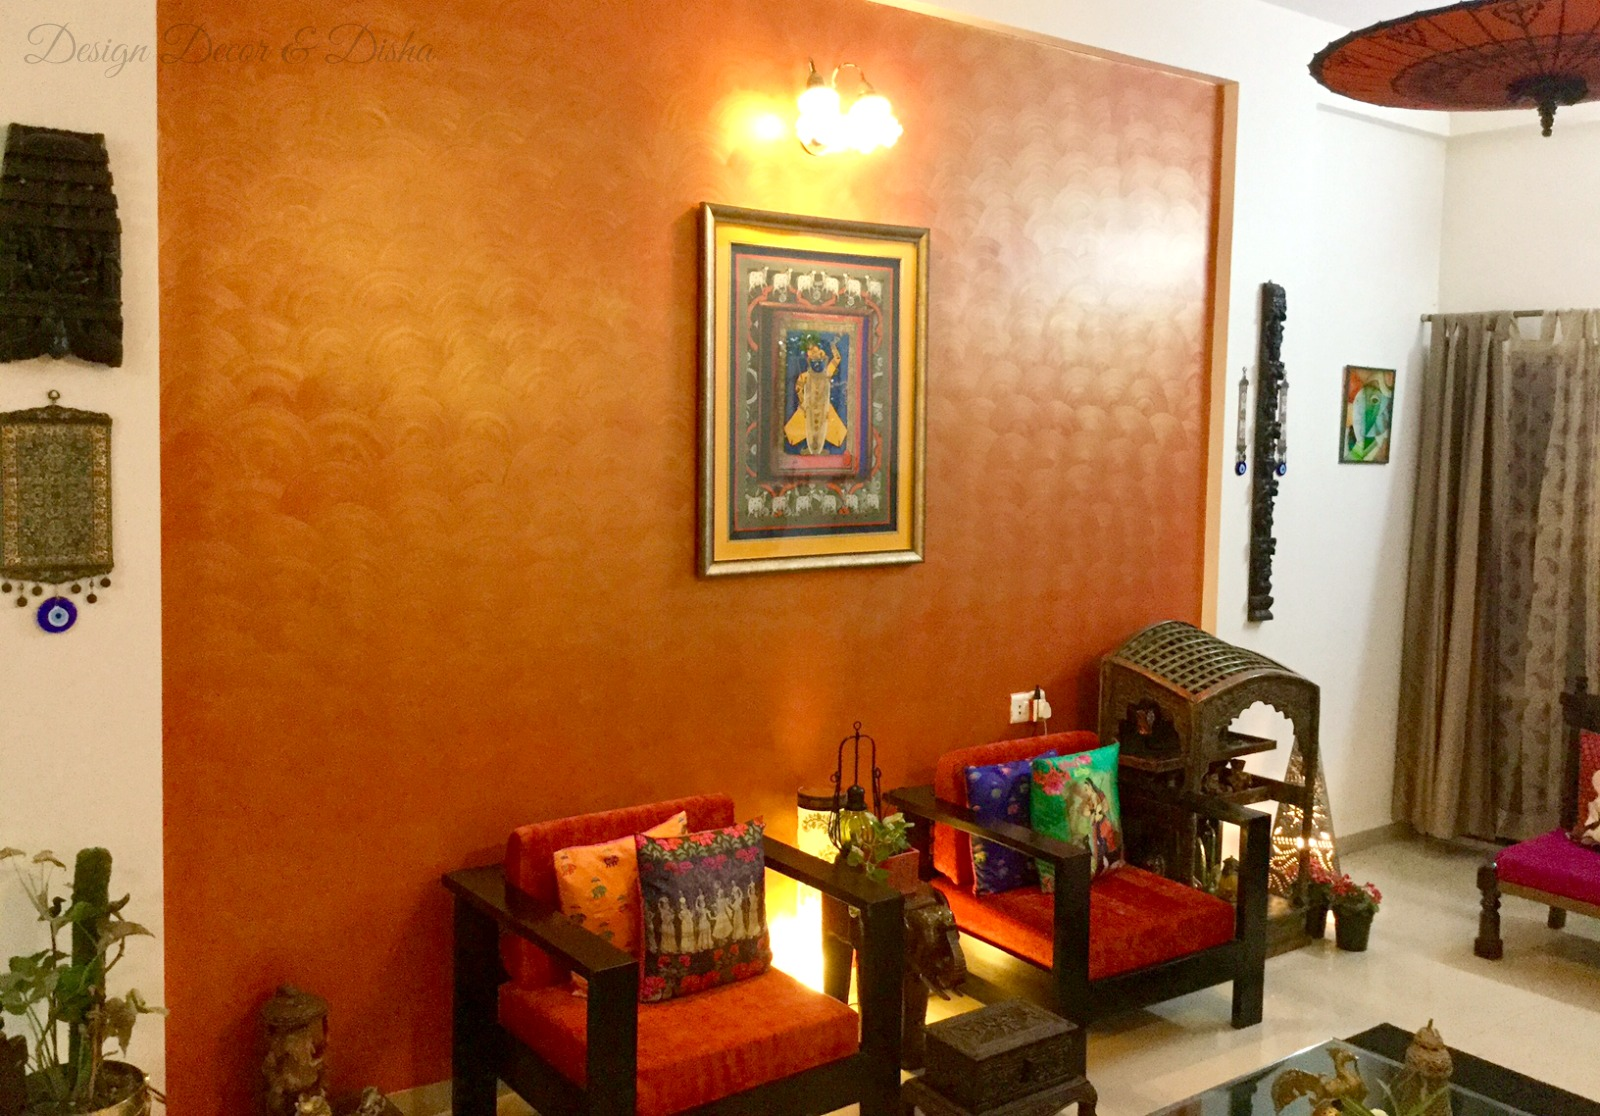 Indian Style Decor Design Decor And Disha An Indian Design And Decor Blog Wall